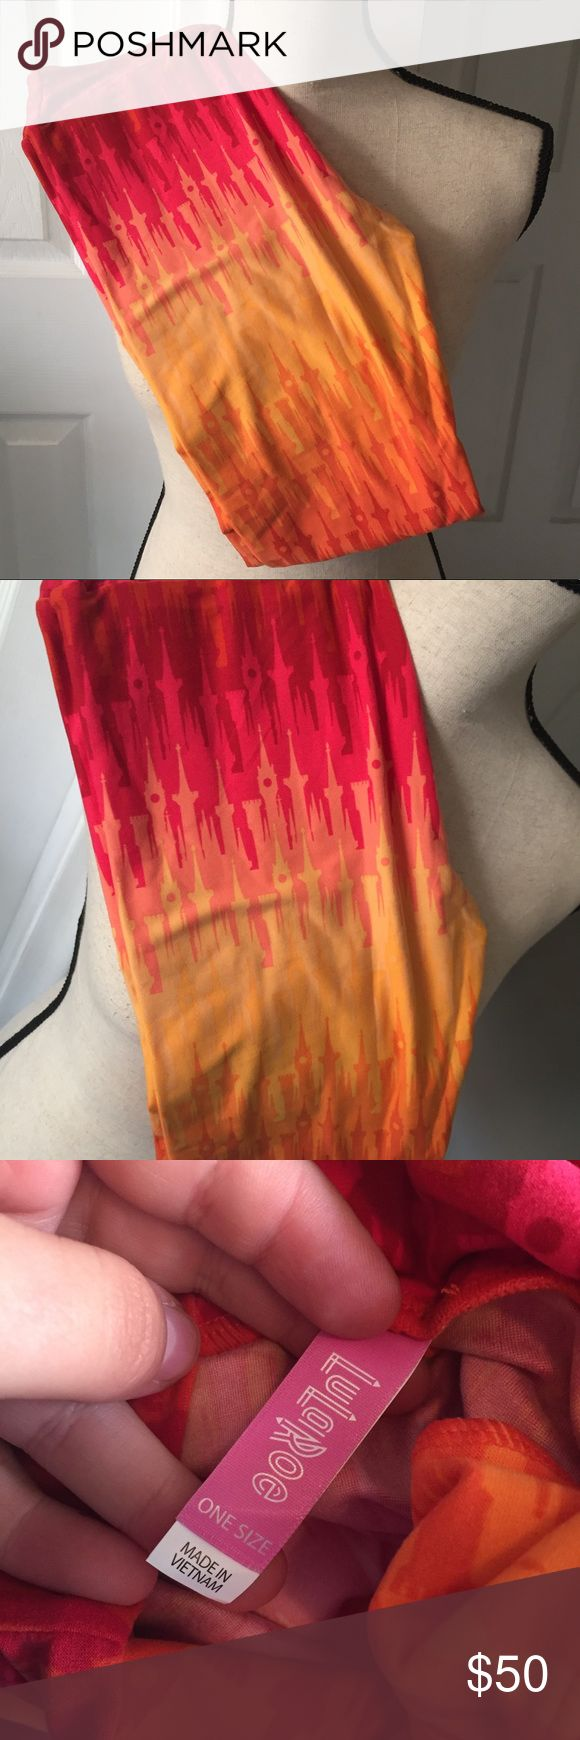 Disney LuLaRoe Castle Leggings New Disney Ombré Castle LuLaRoe leggings in One Size. Colors of reds & oranges . Never worn or tried on, brand new with tags! I'm not a retailer! I just buy too much lula! Price is higher on these because they're hard to find!   Bundle discount available!  🍍Posh Ambassador! 🍍5 Star Rated Seller!  🍍Same or next day shipper! 🐶Pet friendly 🚬Smoke-free 🚫No trades ❌No half price offers LuLaRoe Pants Leggings